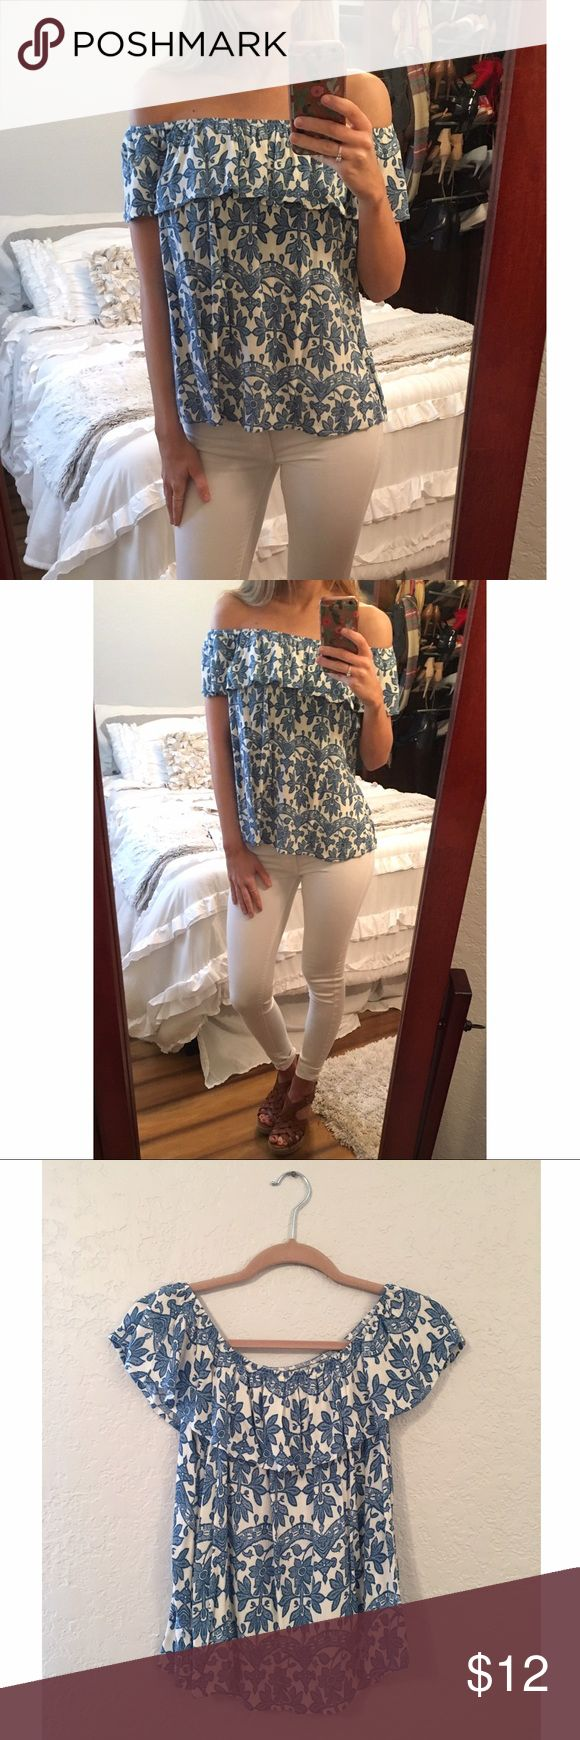 Off-the-Shoulder Blue and White Blouse This off-the-shoulder blue and white blouse was originally purchased from Impressions Online Boutique. Super soft fabric with a gorgeous blue and white design. Perfect lightweight for spring and summer. Size S. Offers considered. Tops Blouses